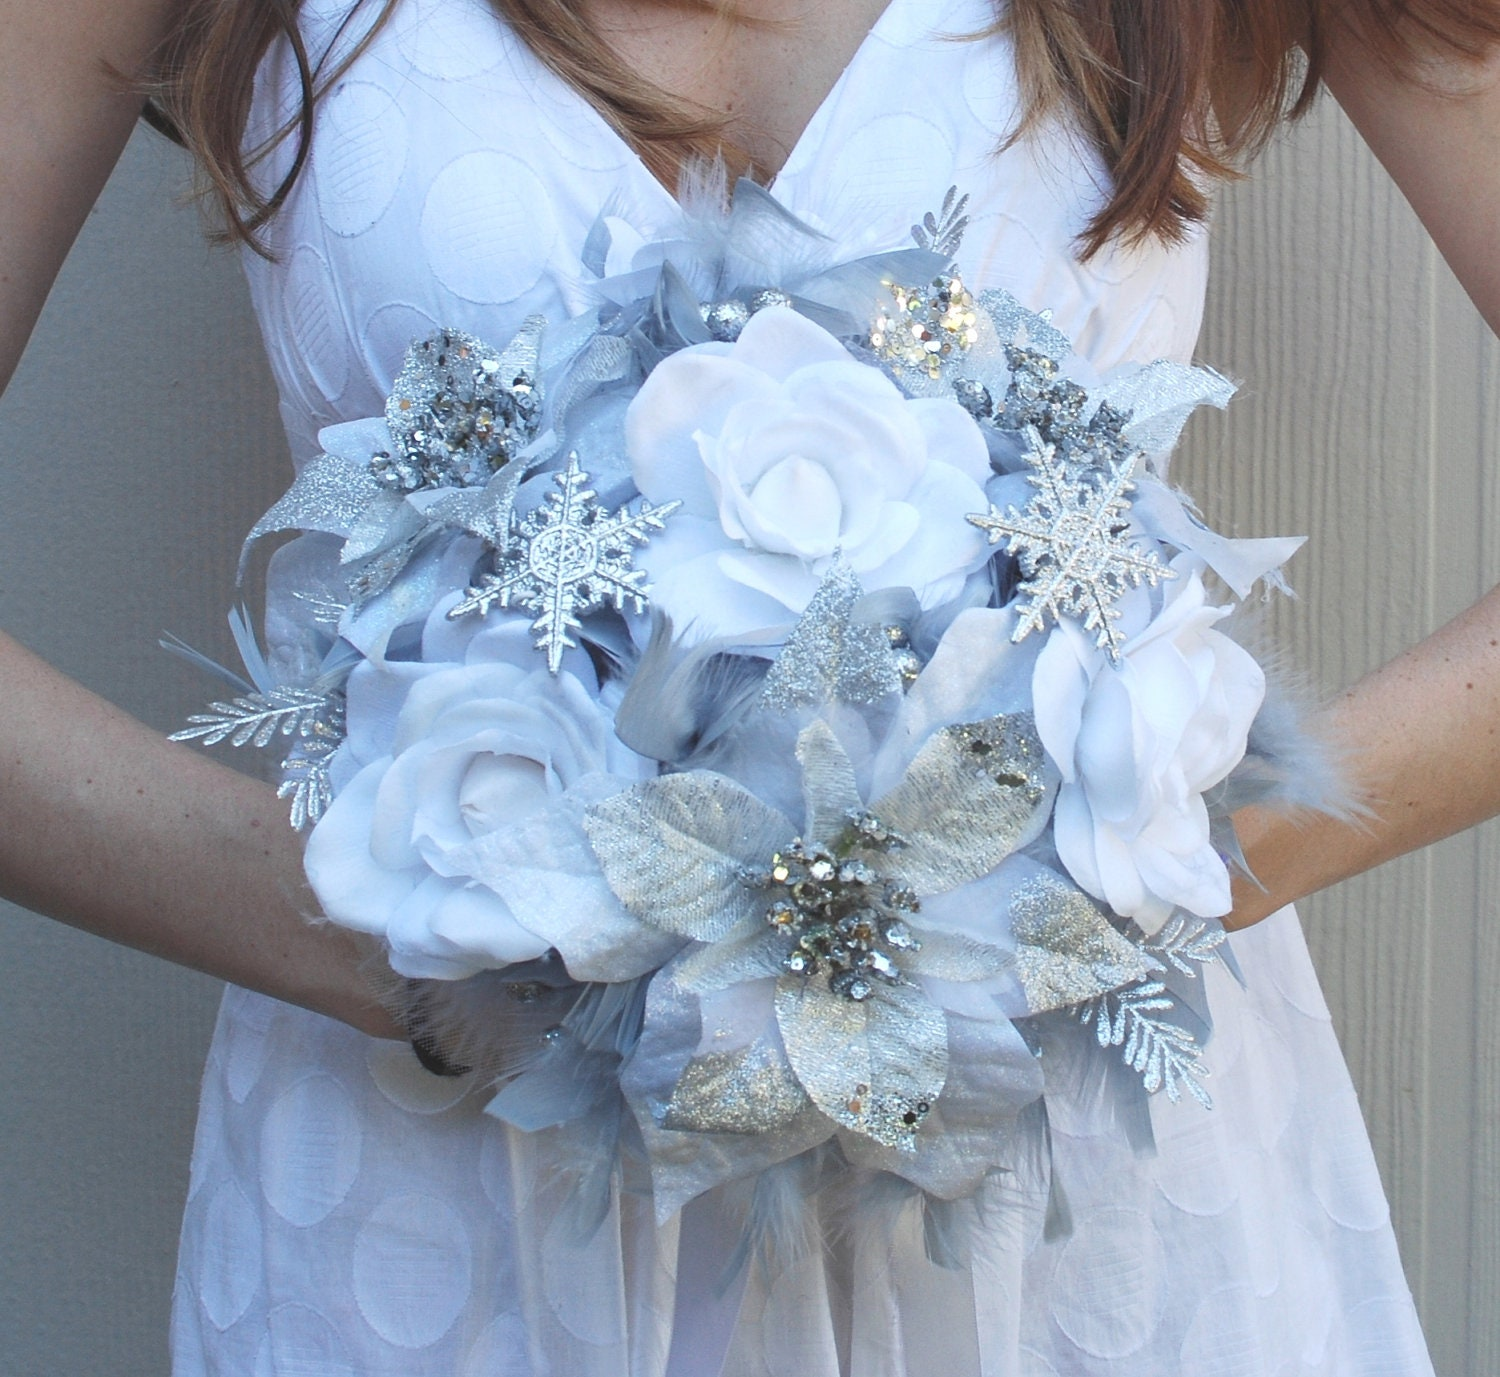 Diy Feather Bouquets Weddings: DRAMATIC Winter Wonderland Feathers & Flowers Bridal Bouquet